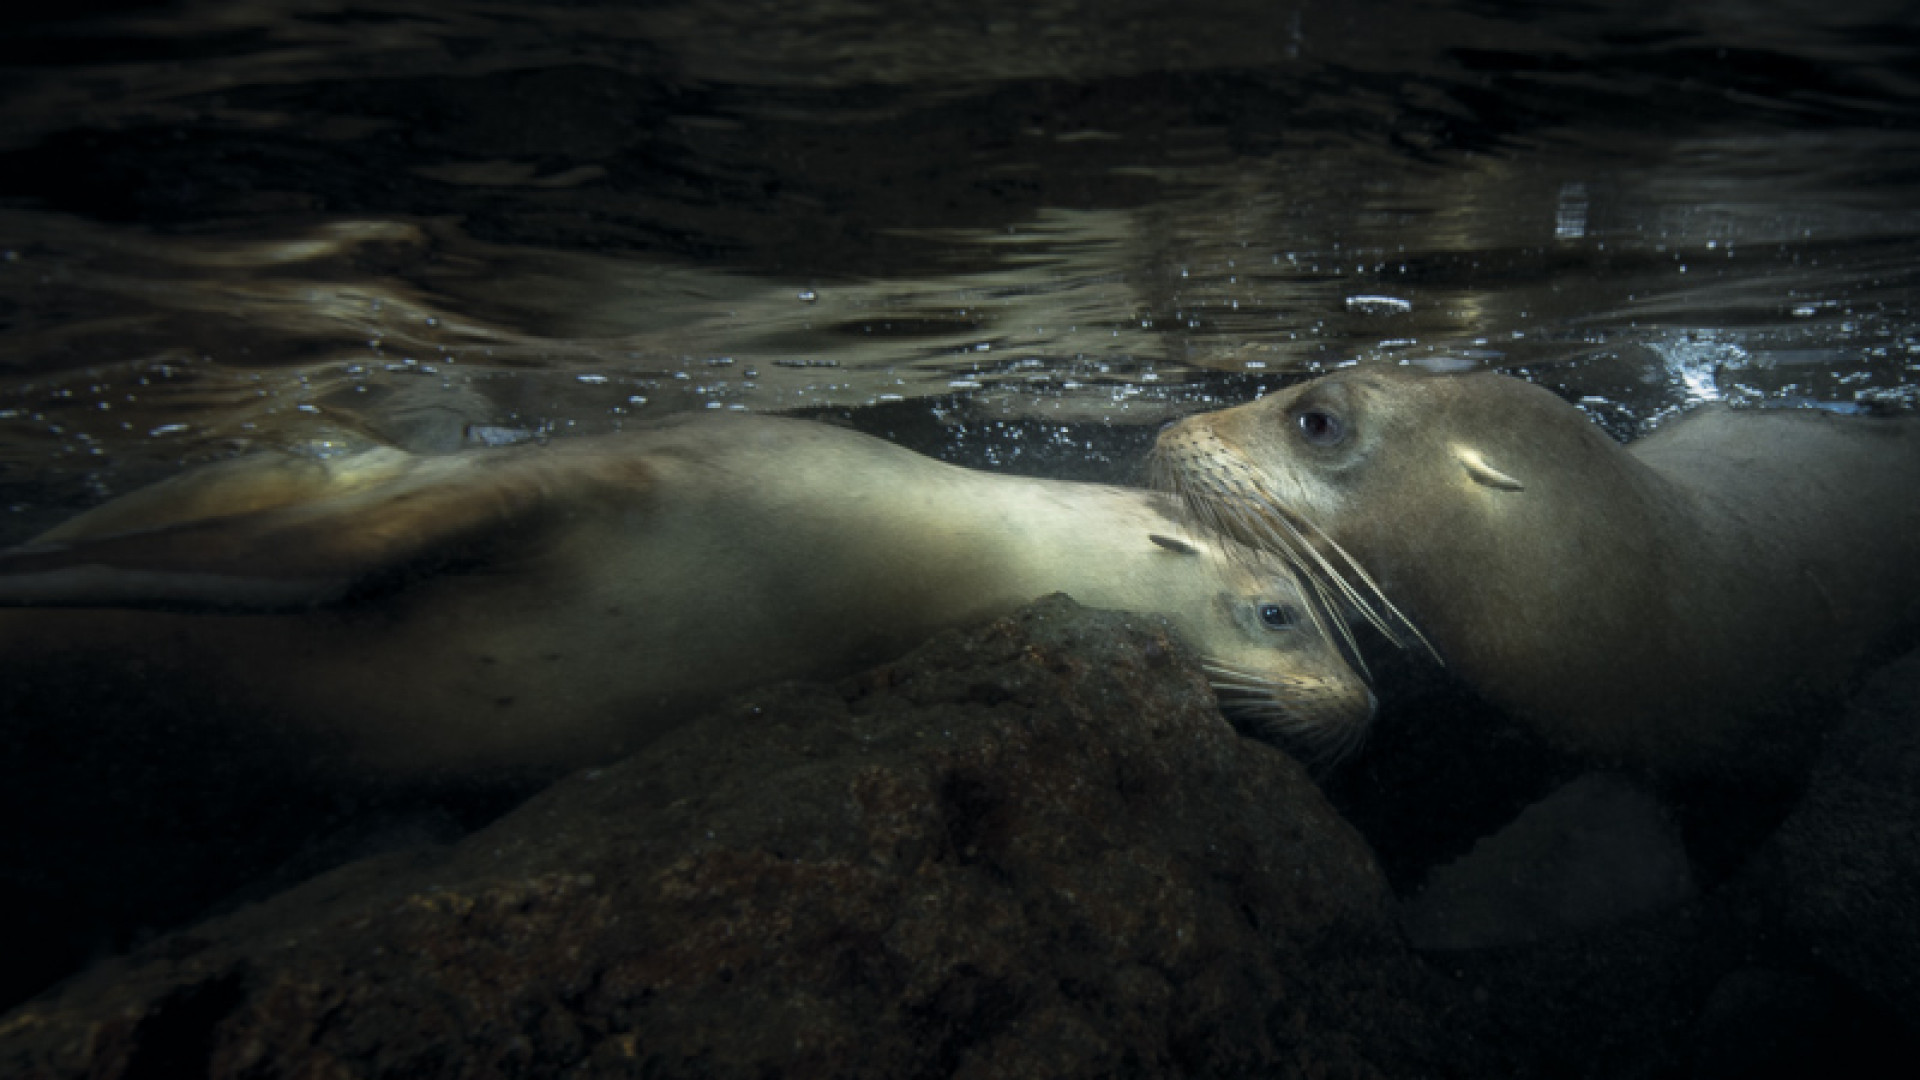 California sea lions under the water in the Galapagos Islands, Ecuador